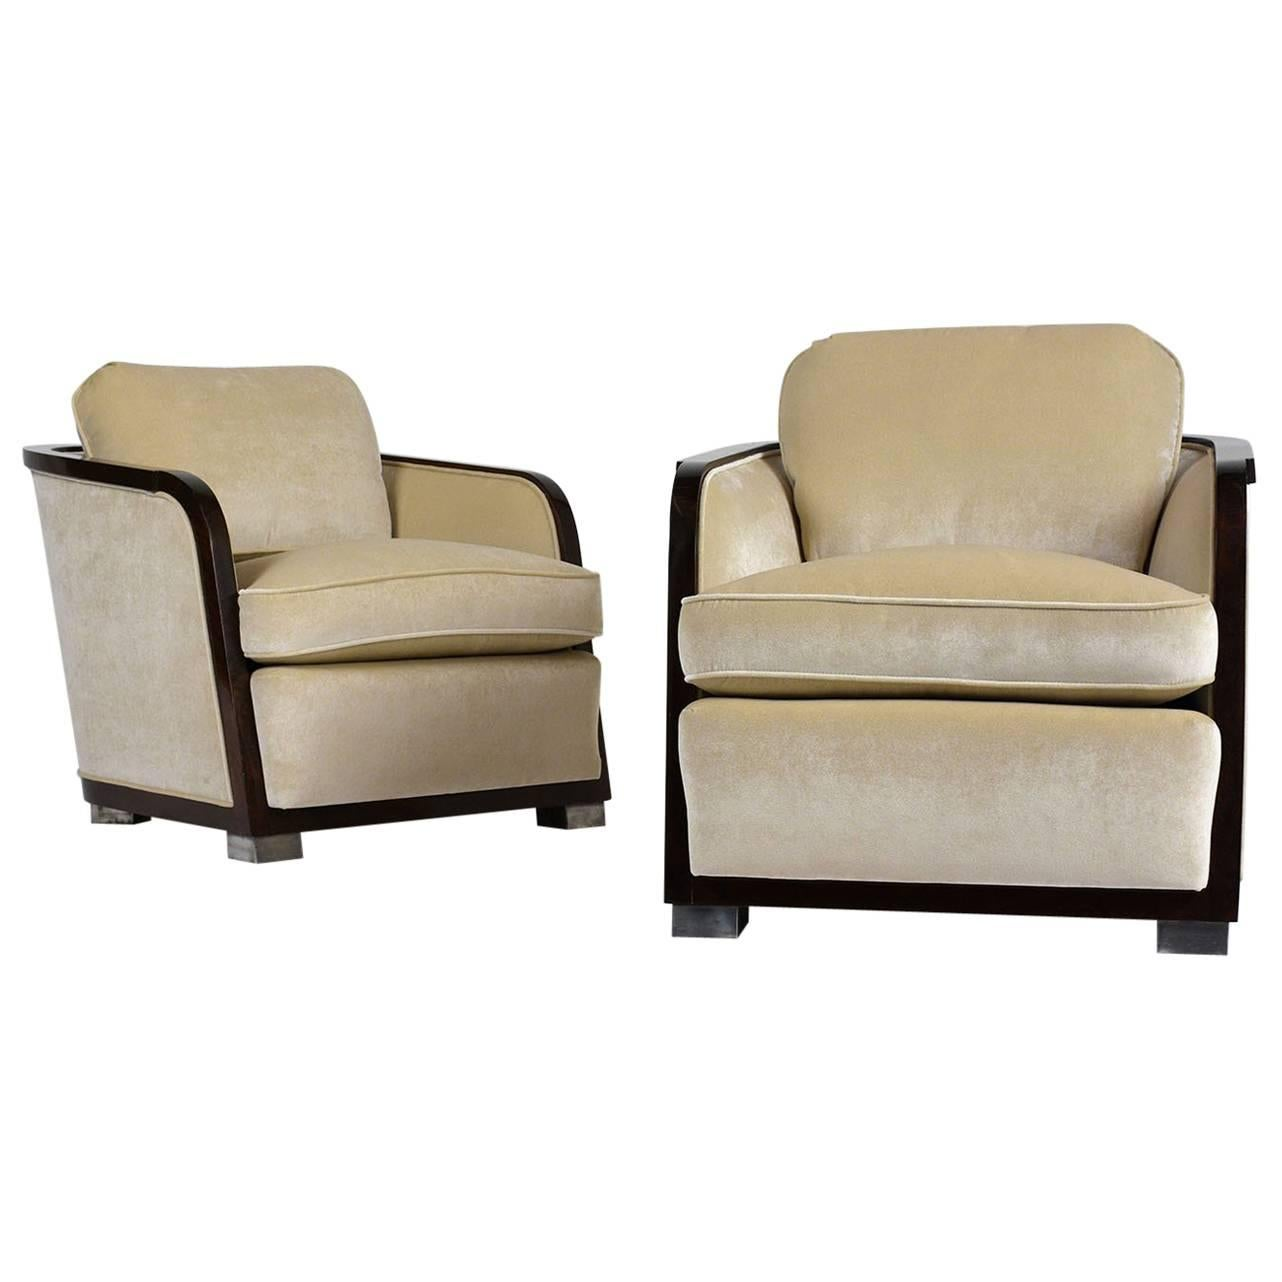 art deco style club chairs chair turns into bed pair of at 1stdibs for sale